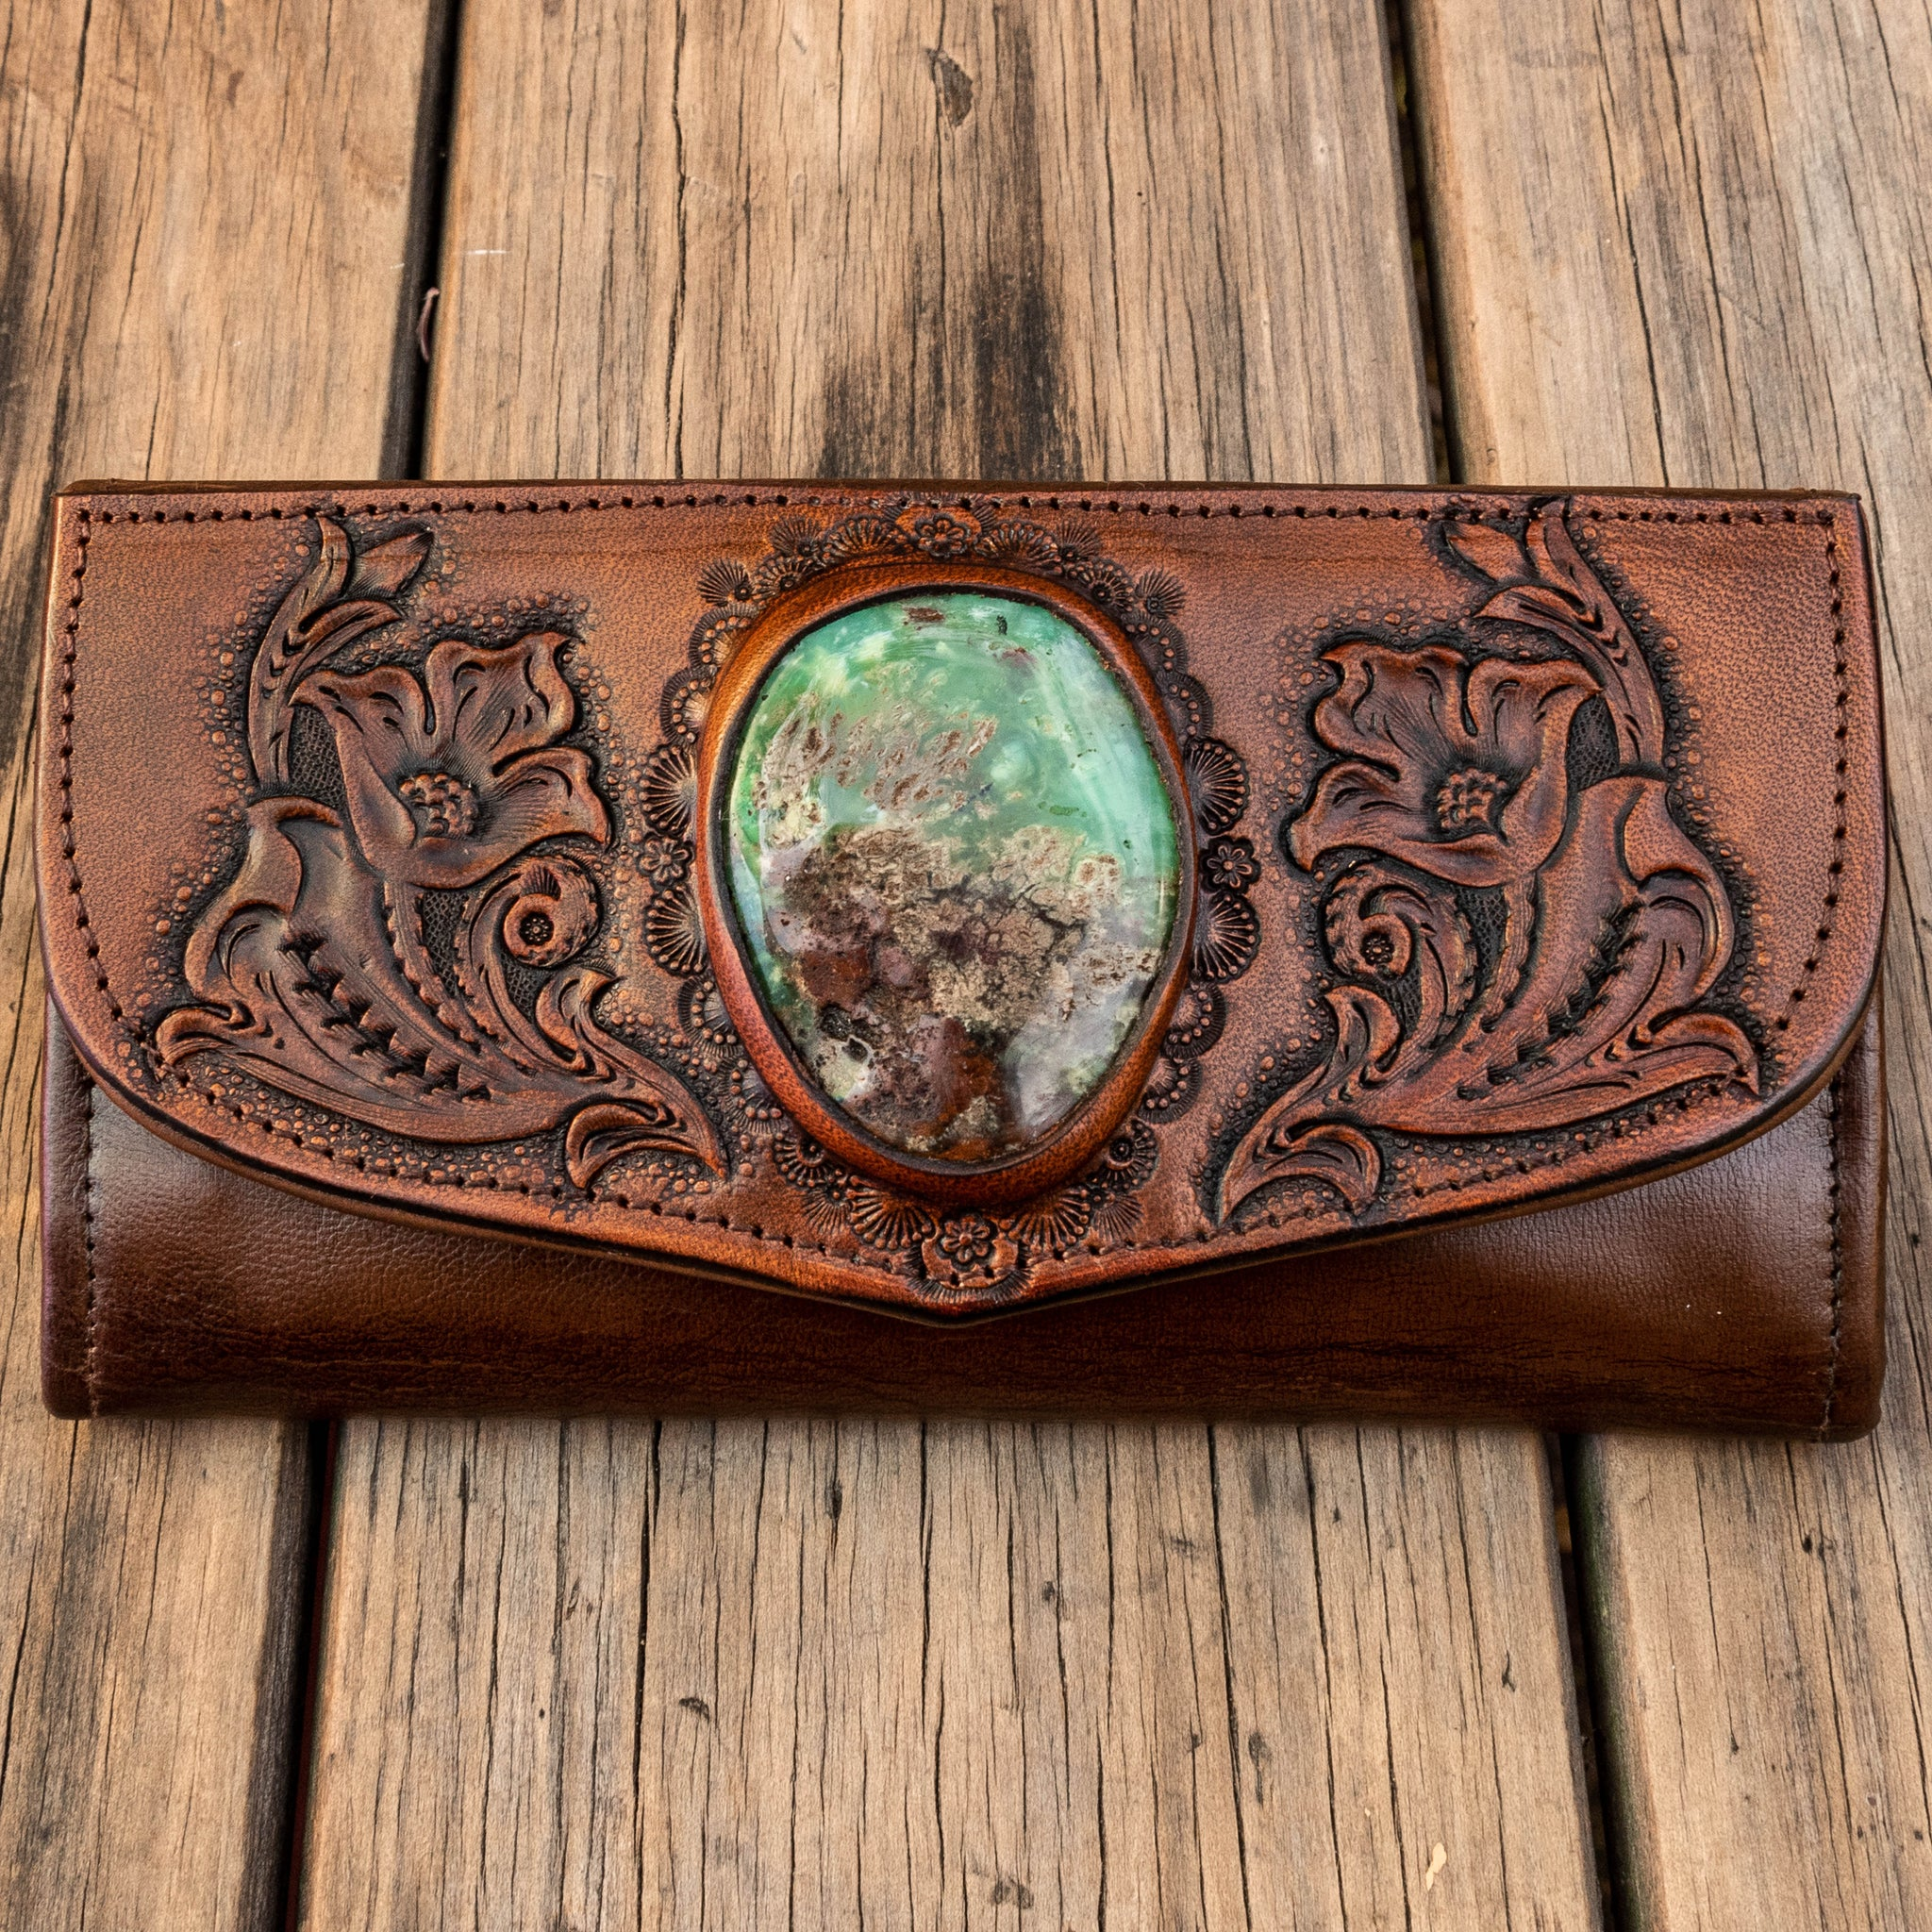 Western Floral wallet with Chrysoprase in chocolate brown leather